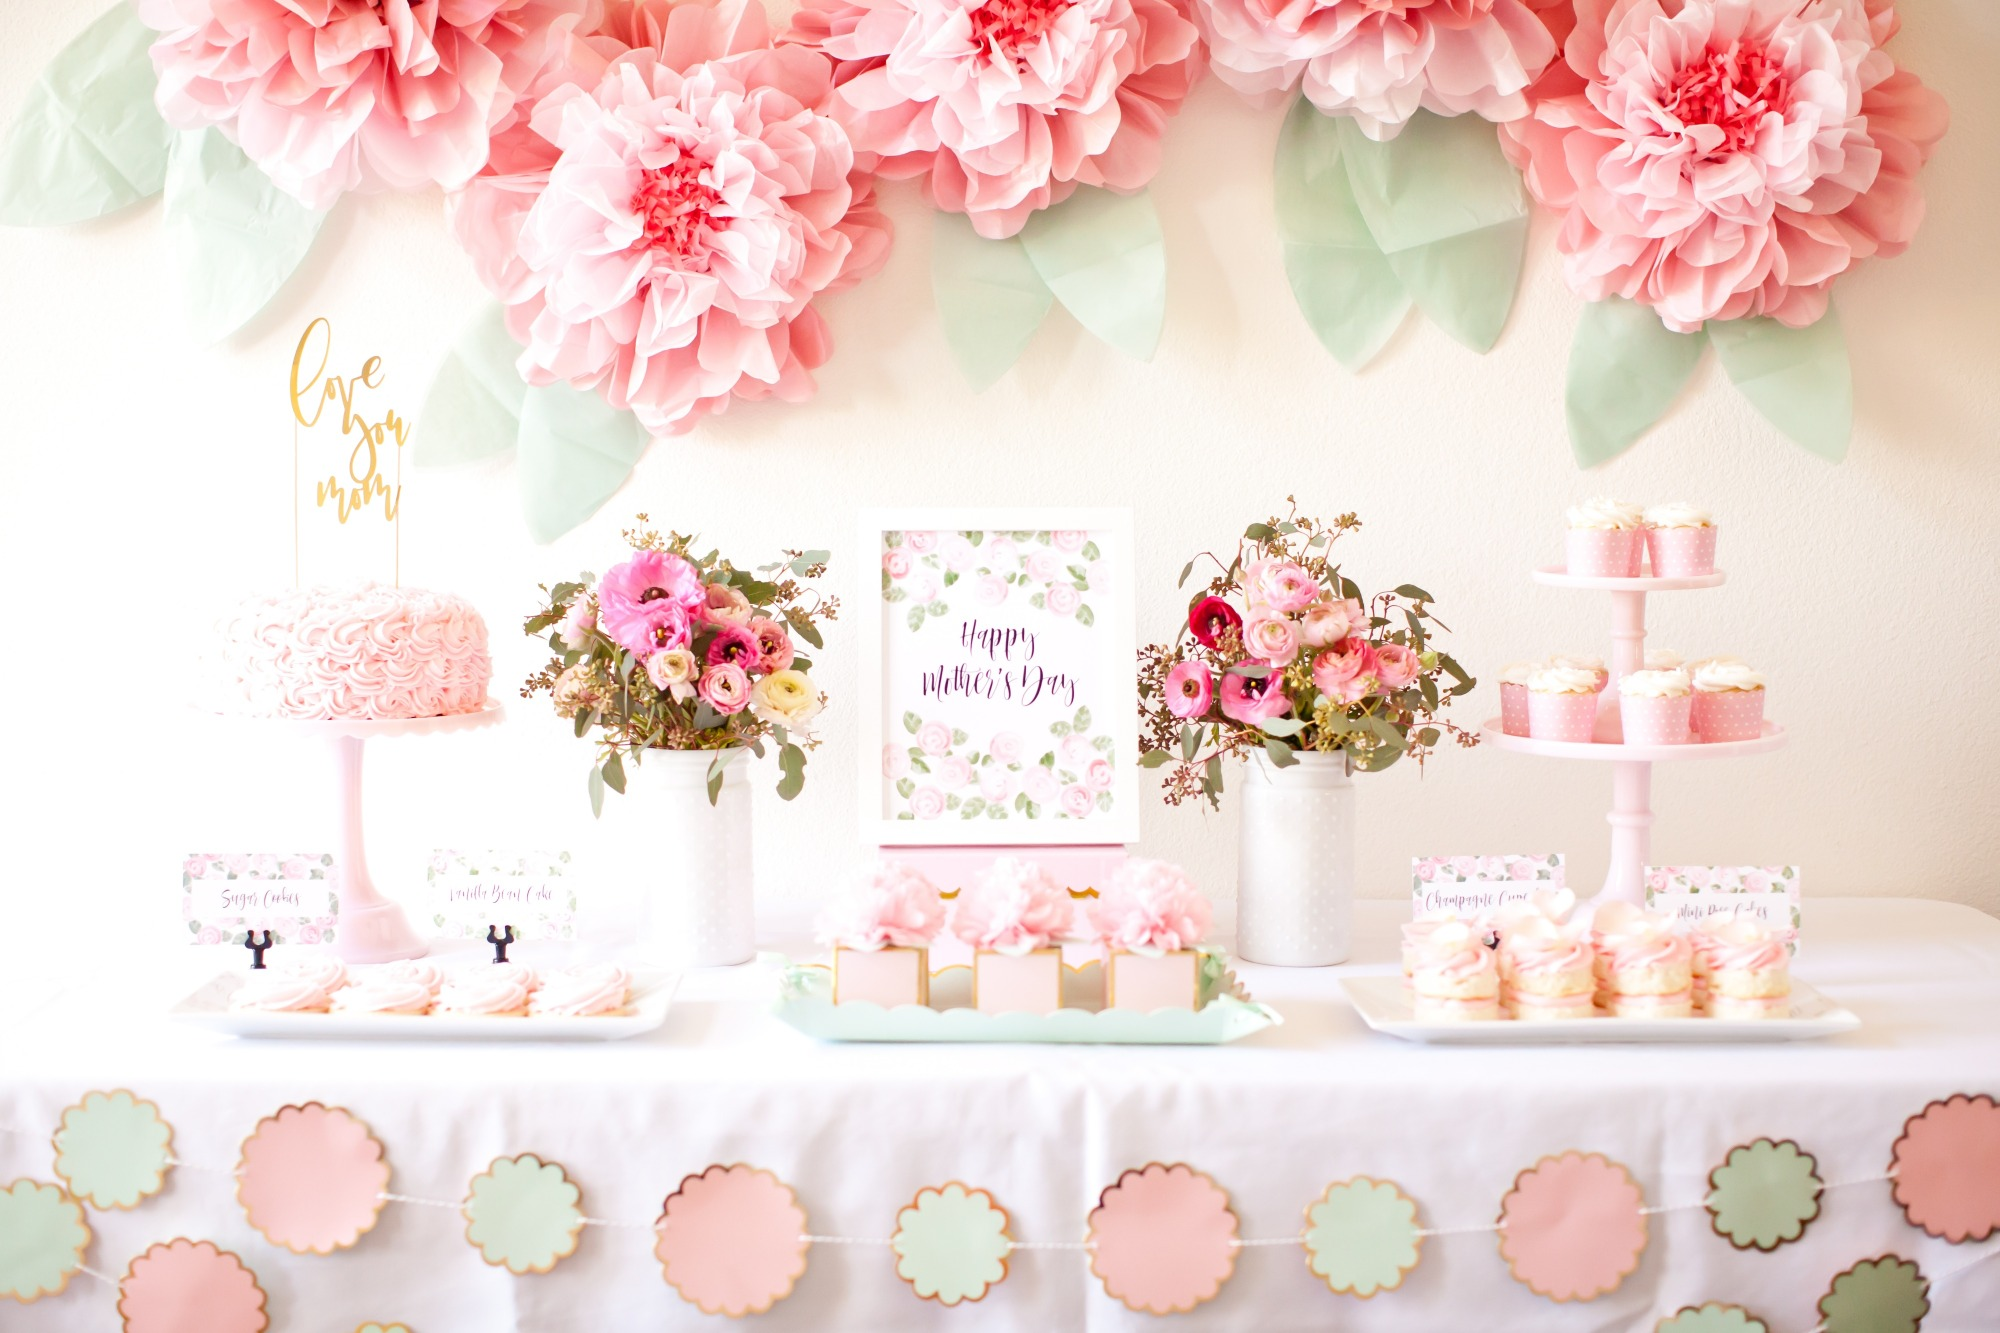 Dessert Table from Mother's Day Brunch Styled by Kiss Me Kate Studio | Black Twine